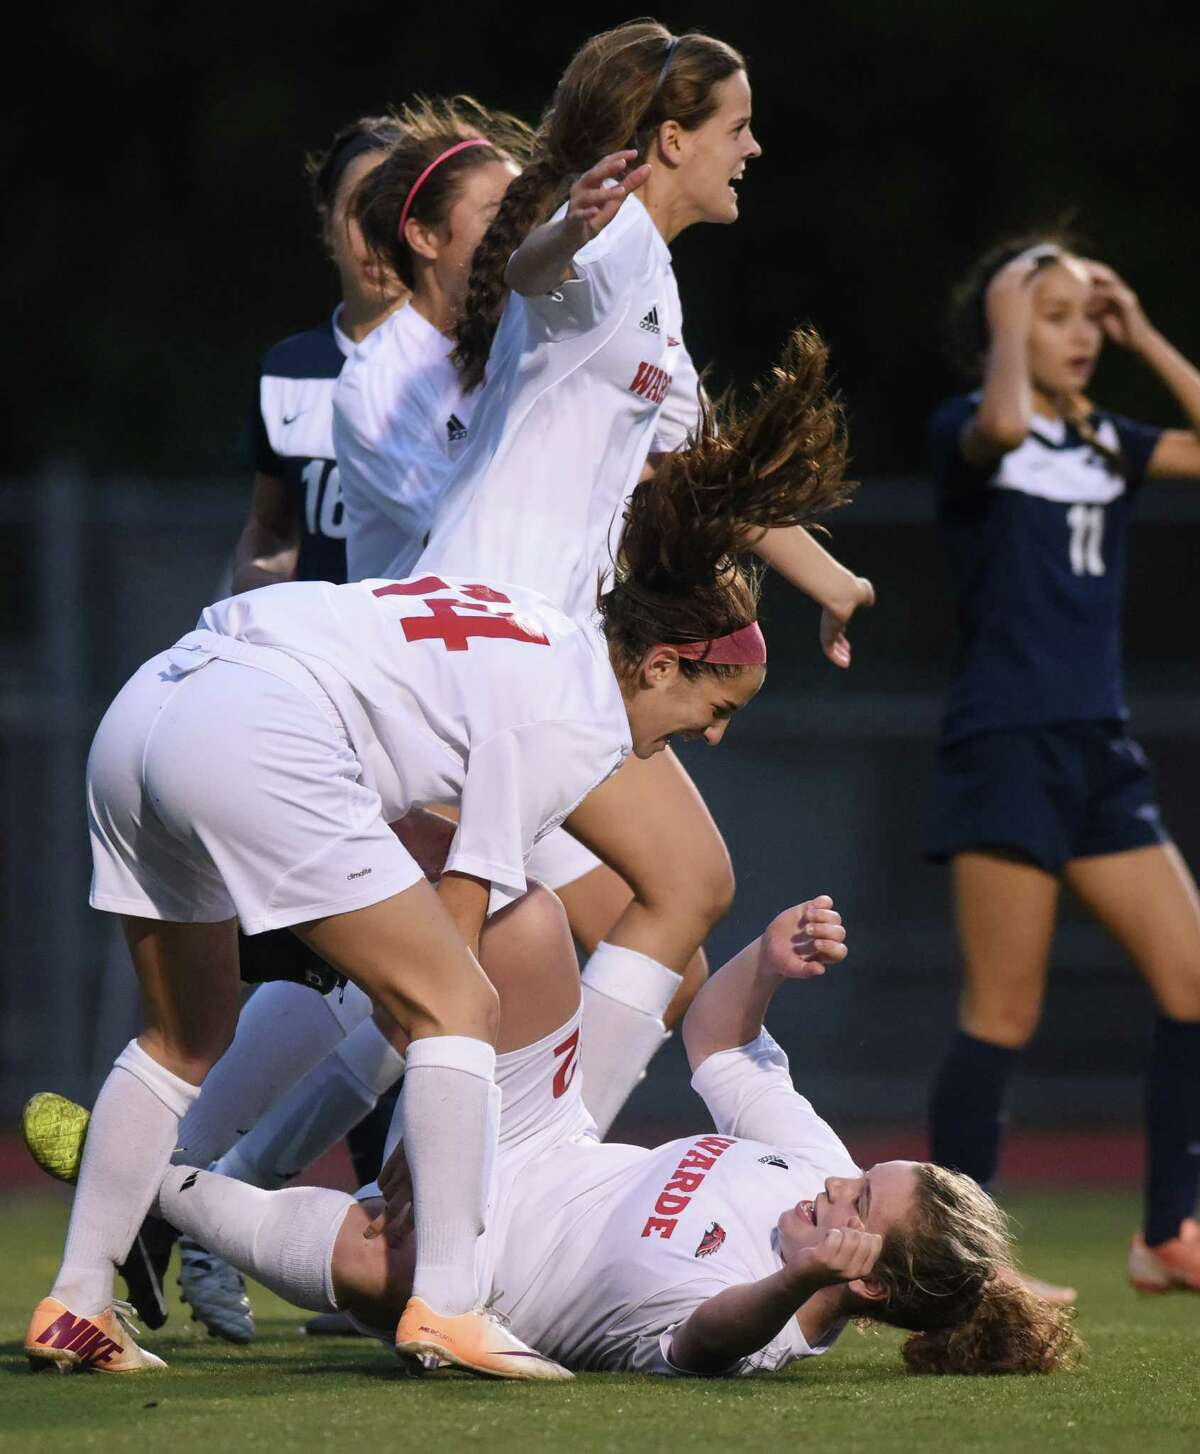 Fairfield Warde's Virginie LaRouche, top, celebrates as teammate Meredith Nerreau helps Anna Glovin off the ground after scoring a goal in Fairfield Warde and Staples' 1-1 double overtime tie in the FCIAC high school girls soccer championship game at Norwalk High School in Norwalk, Conn. Wednesday, Oct. 29, 2014.